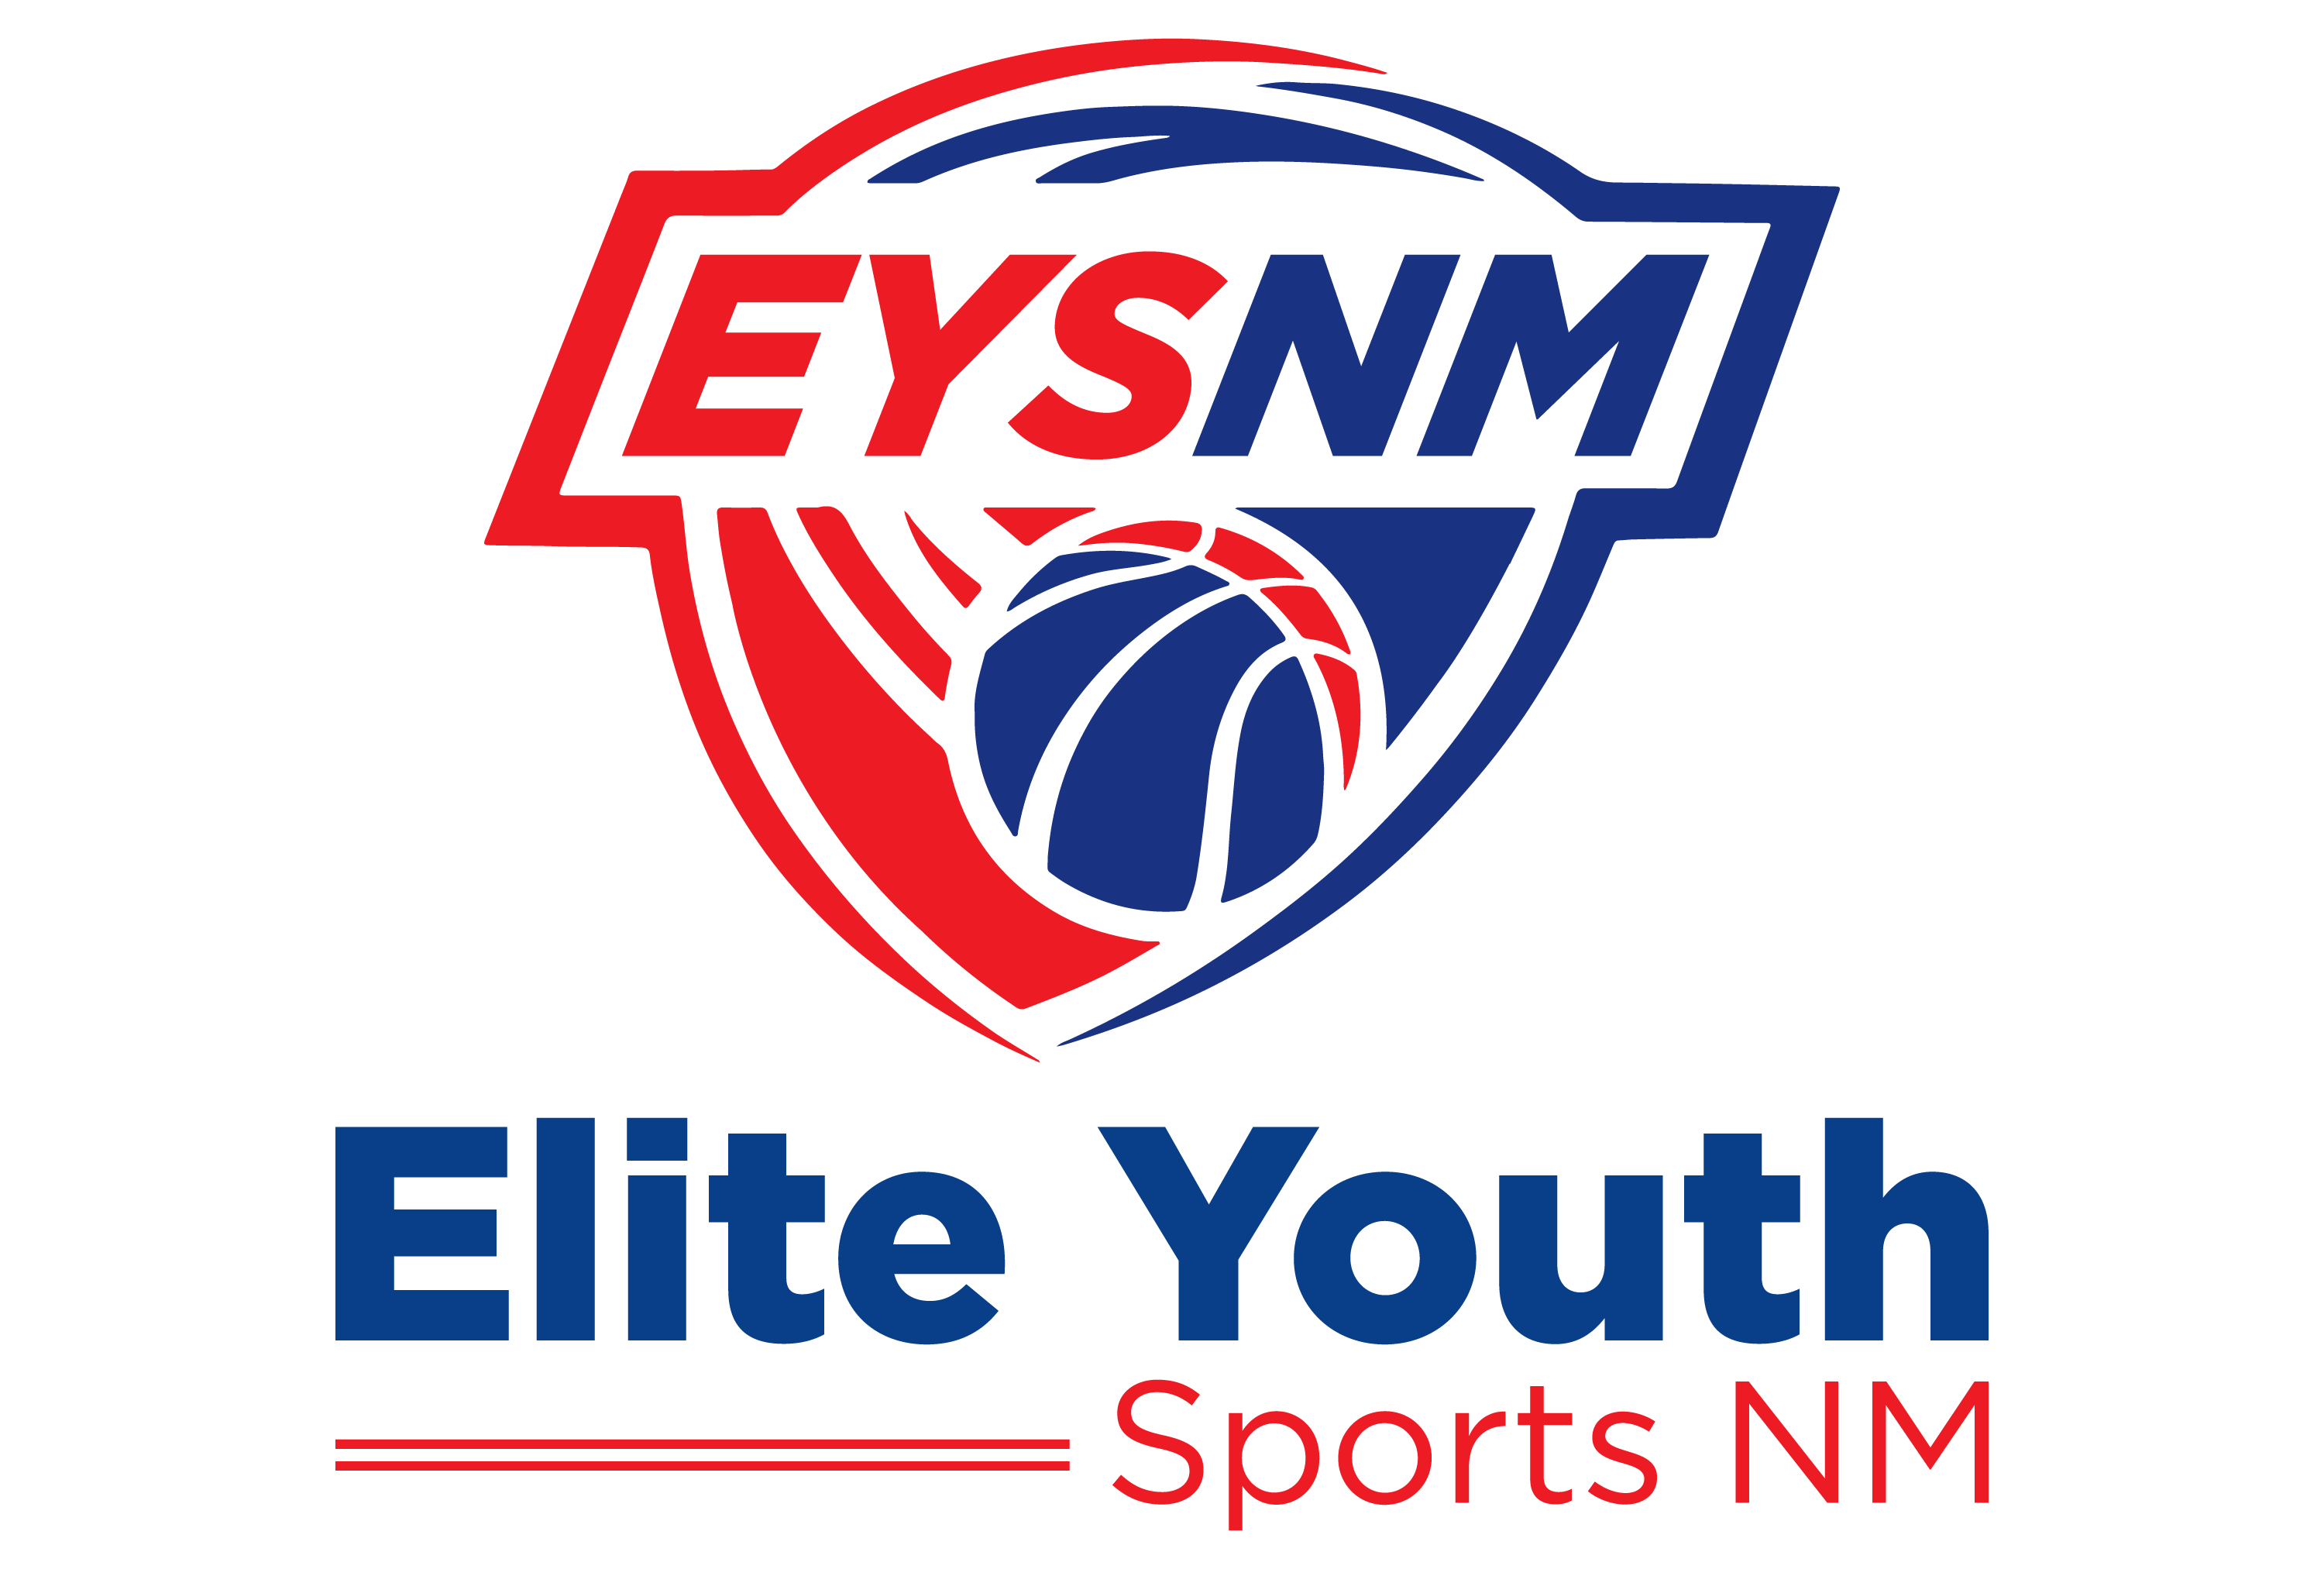 Elite_Youth_Sports_NM01